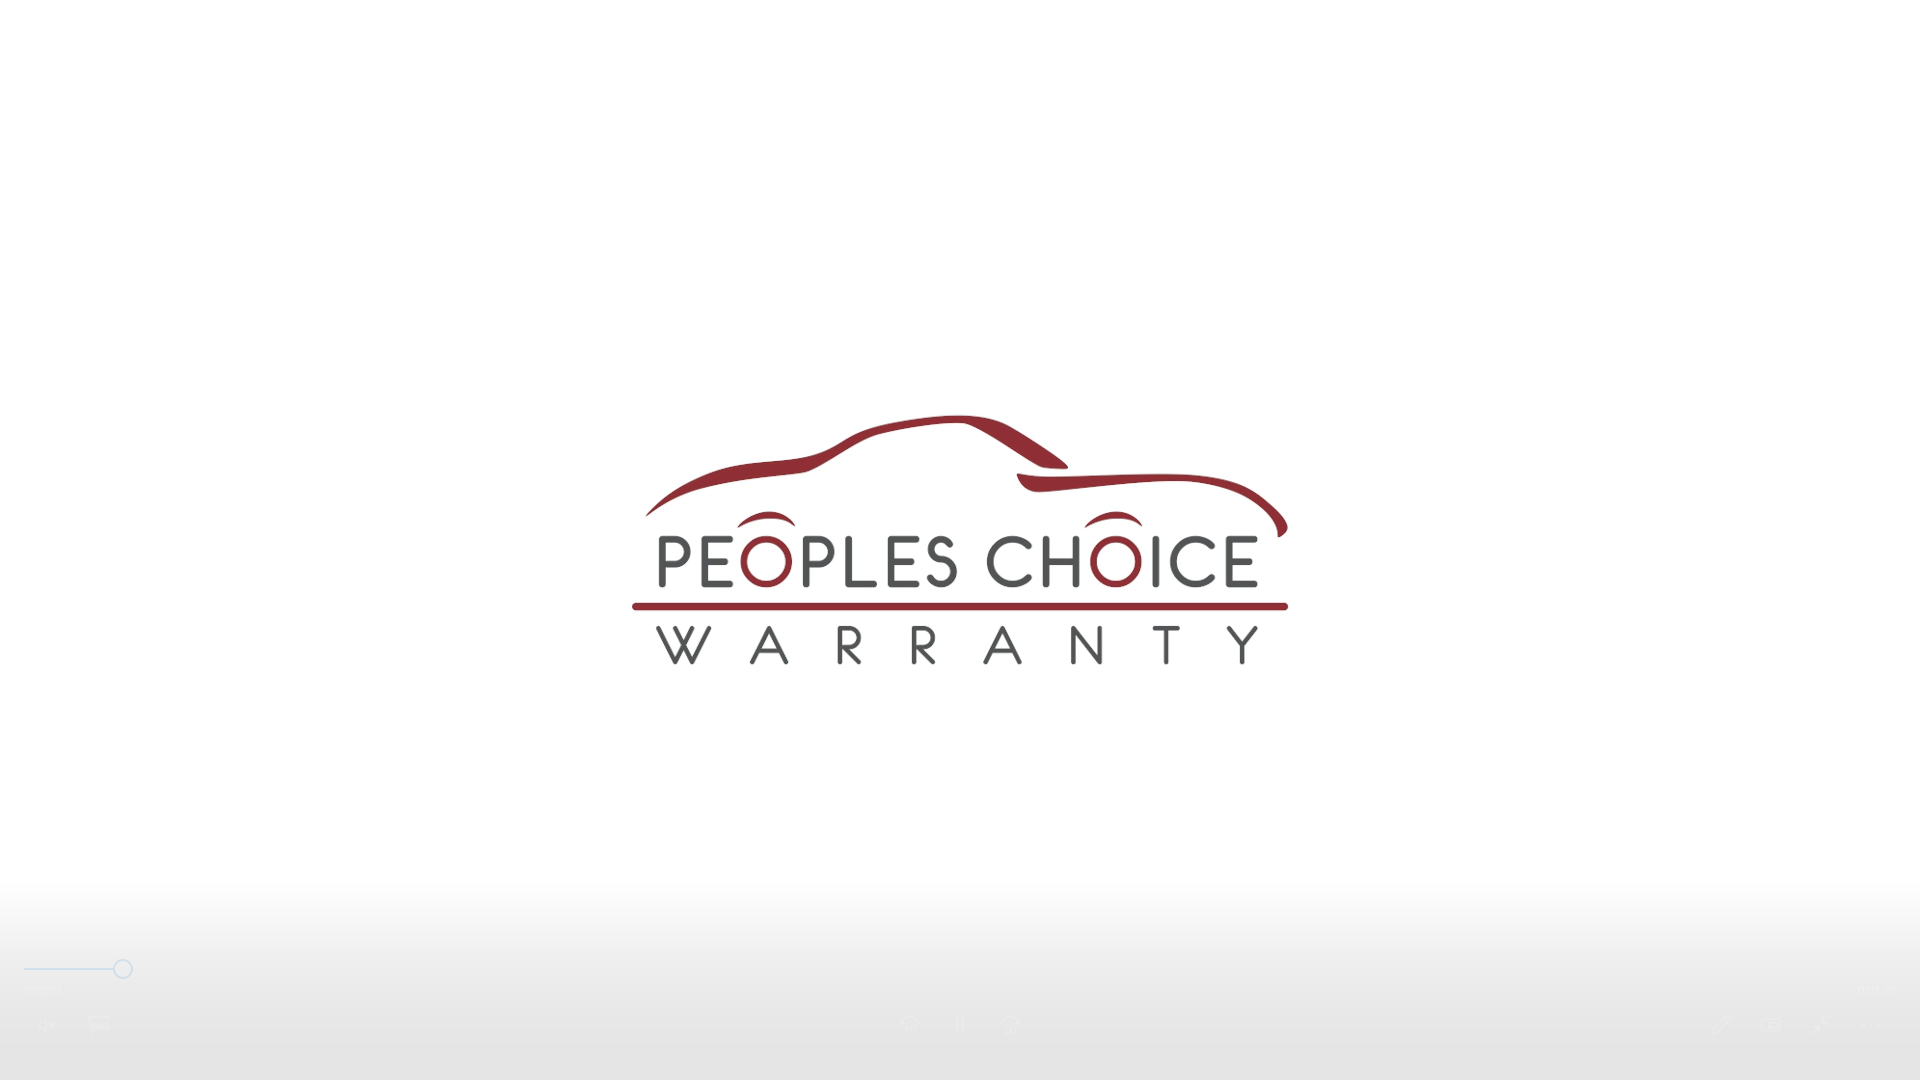 Peoples Choice Warranty